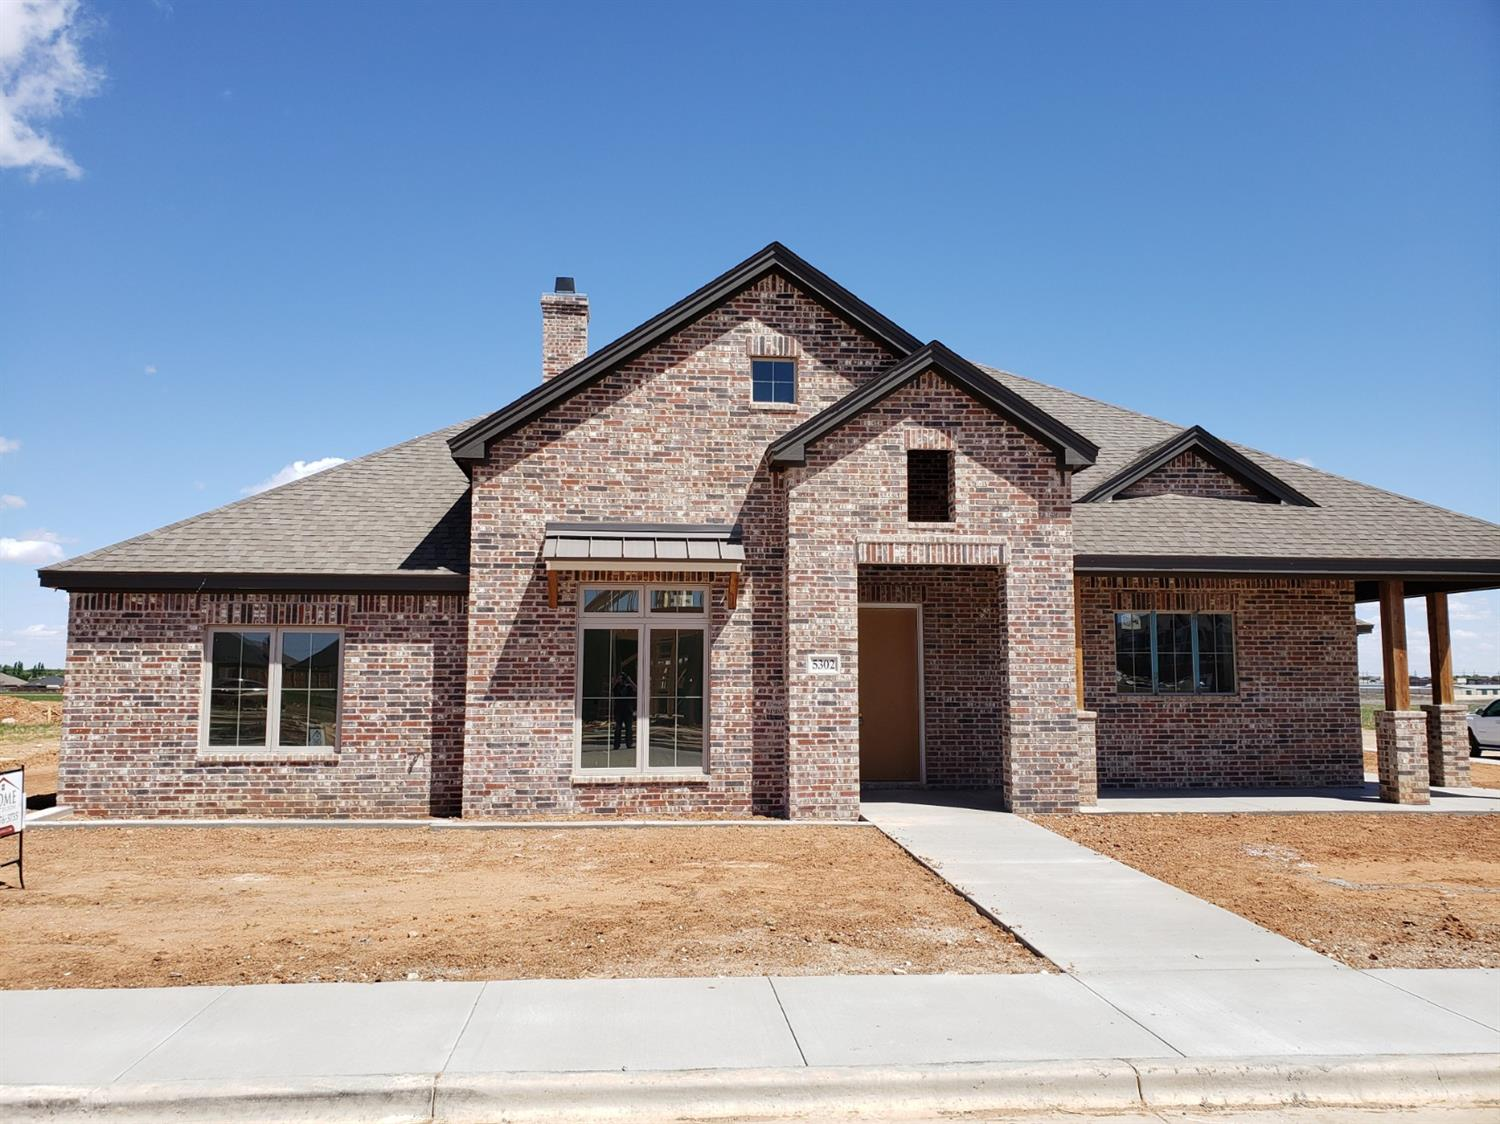 Great 3 bedroom, 2.5 bathroom HOME in the new upscale Abbey Glen area just off of 114th and Slide.  This floor plan is our most called on plan and has an amazing vaulted kitchen. Master bedroom is large and isolated, the Master bathroom has a his and hers vanities and a large shower. Master closet will blow you away with all the space. Many upgrades such as MI Windows, TRANE Heating and Air System, insulated garage, taller garage doors, whirlpool appliances, James Hardie Siding products and much more.Home features foam insulation.